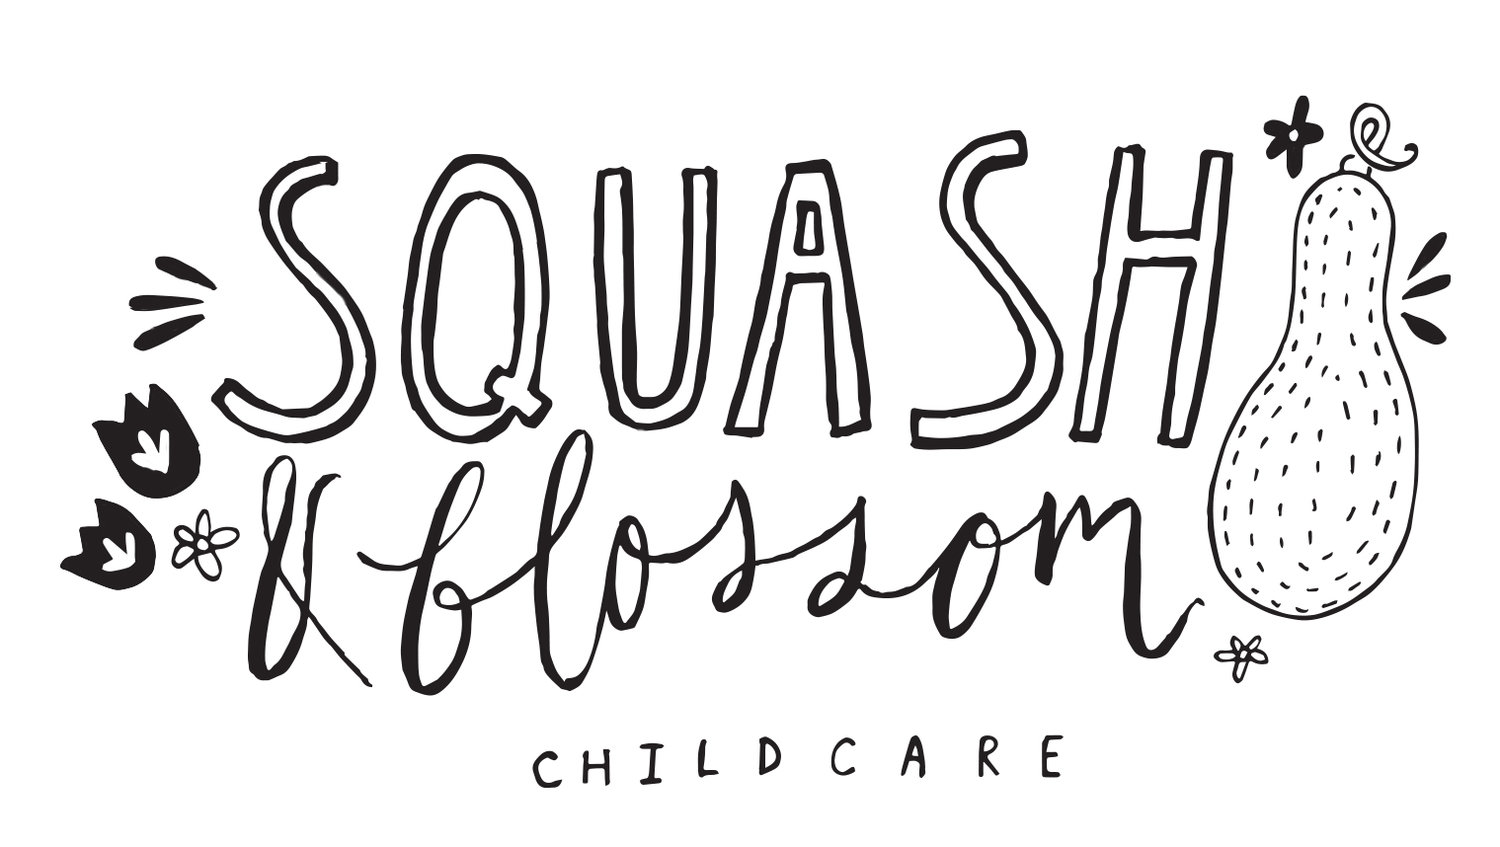 Squash and Blossom Childcare